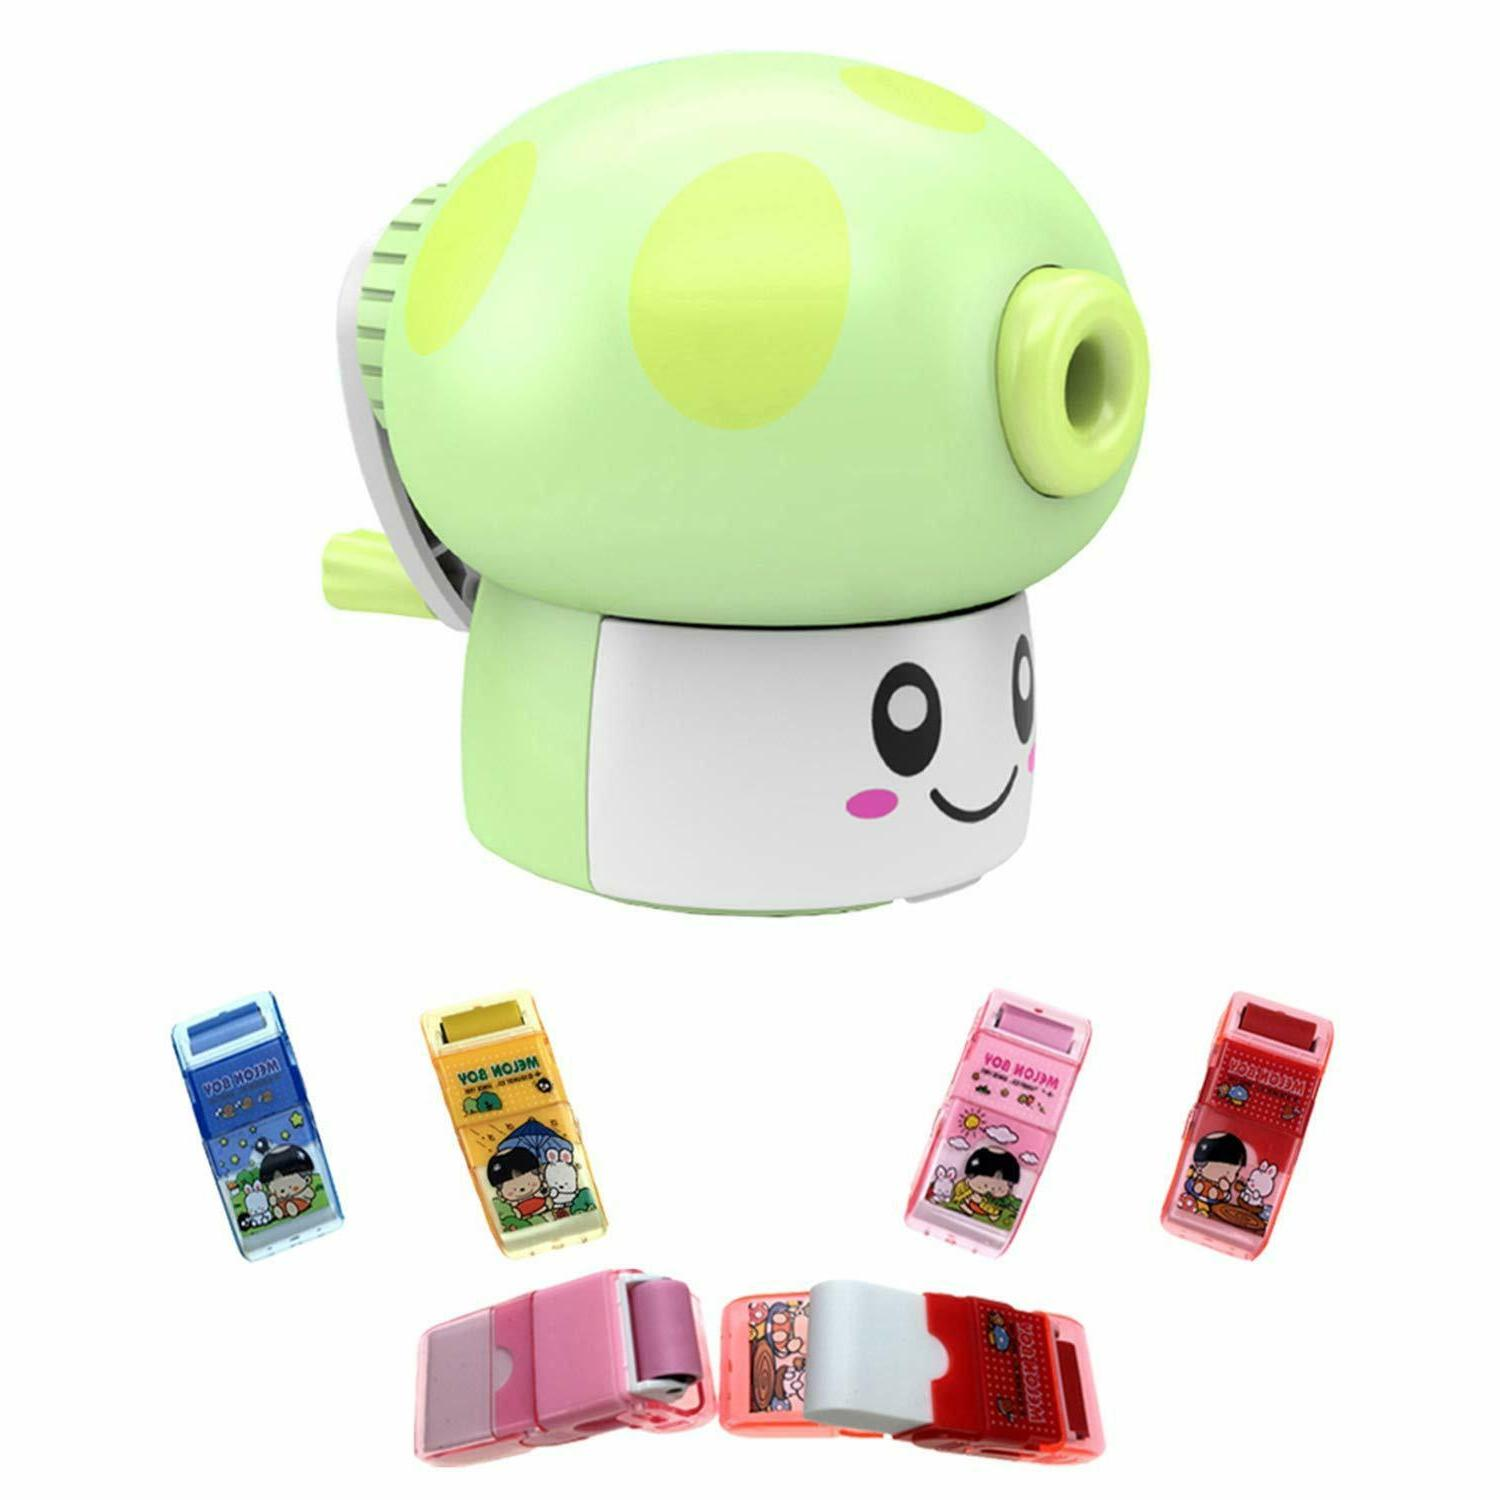 pencil sharpener so cute and 4 pack